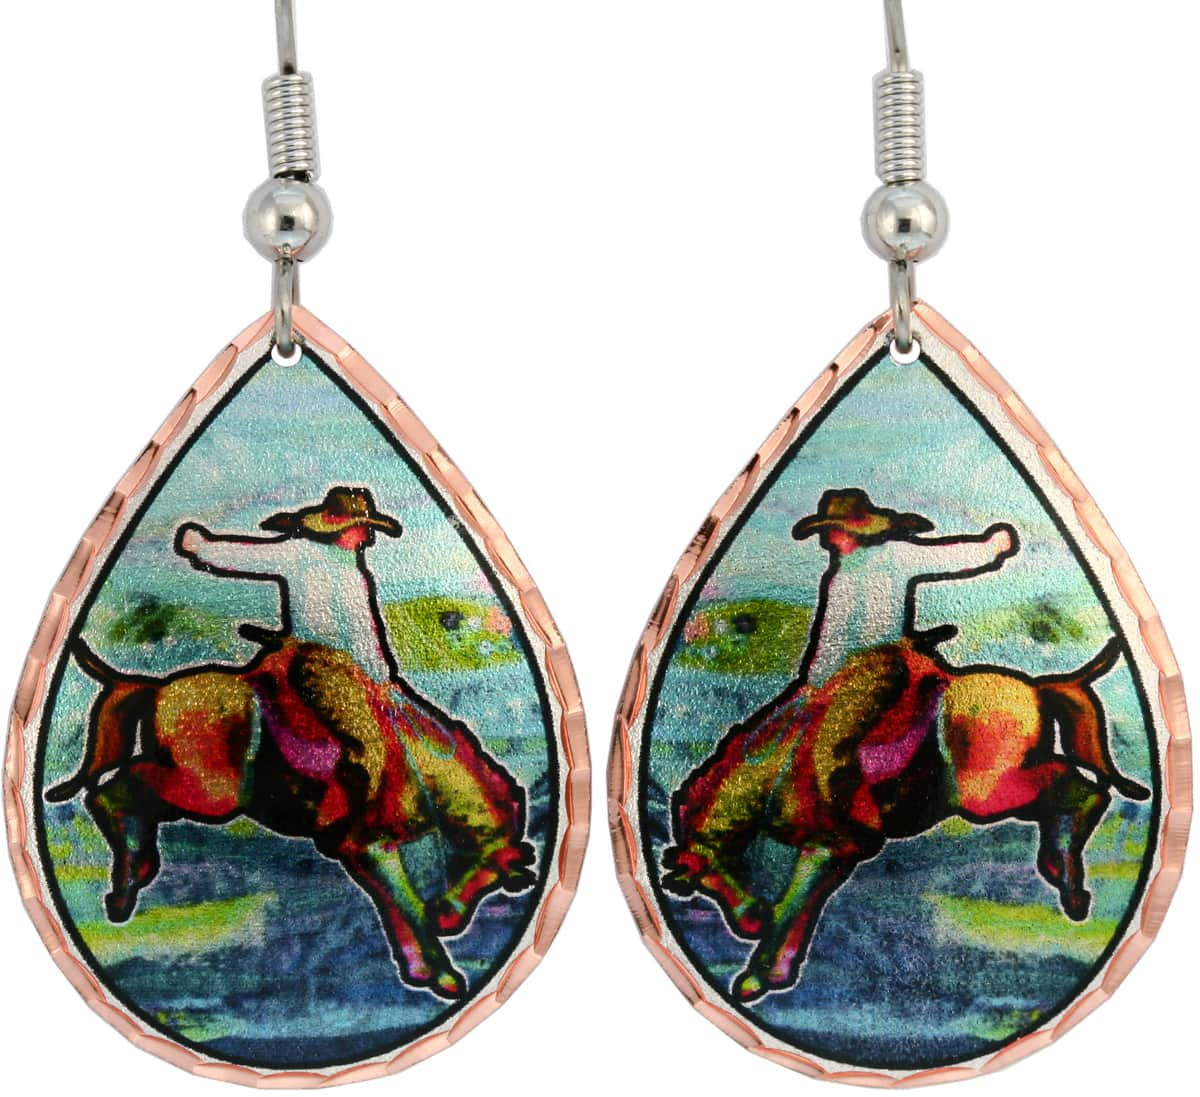 Colorful western bronco buster earrings. You cannot find our unique handmade jewelry elsewhere